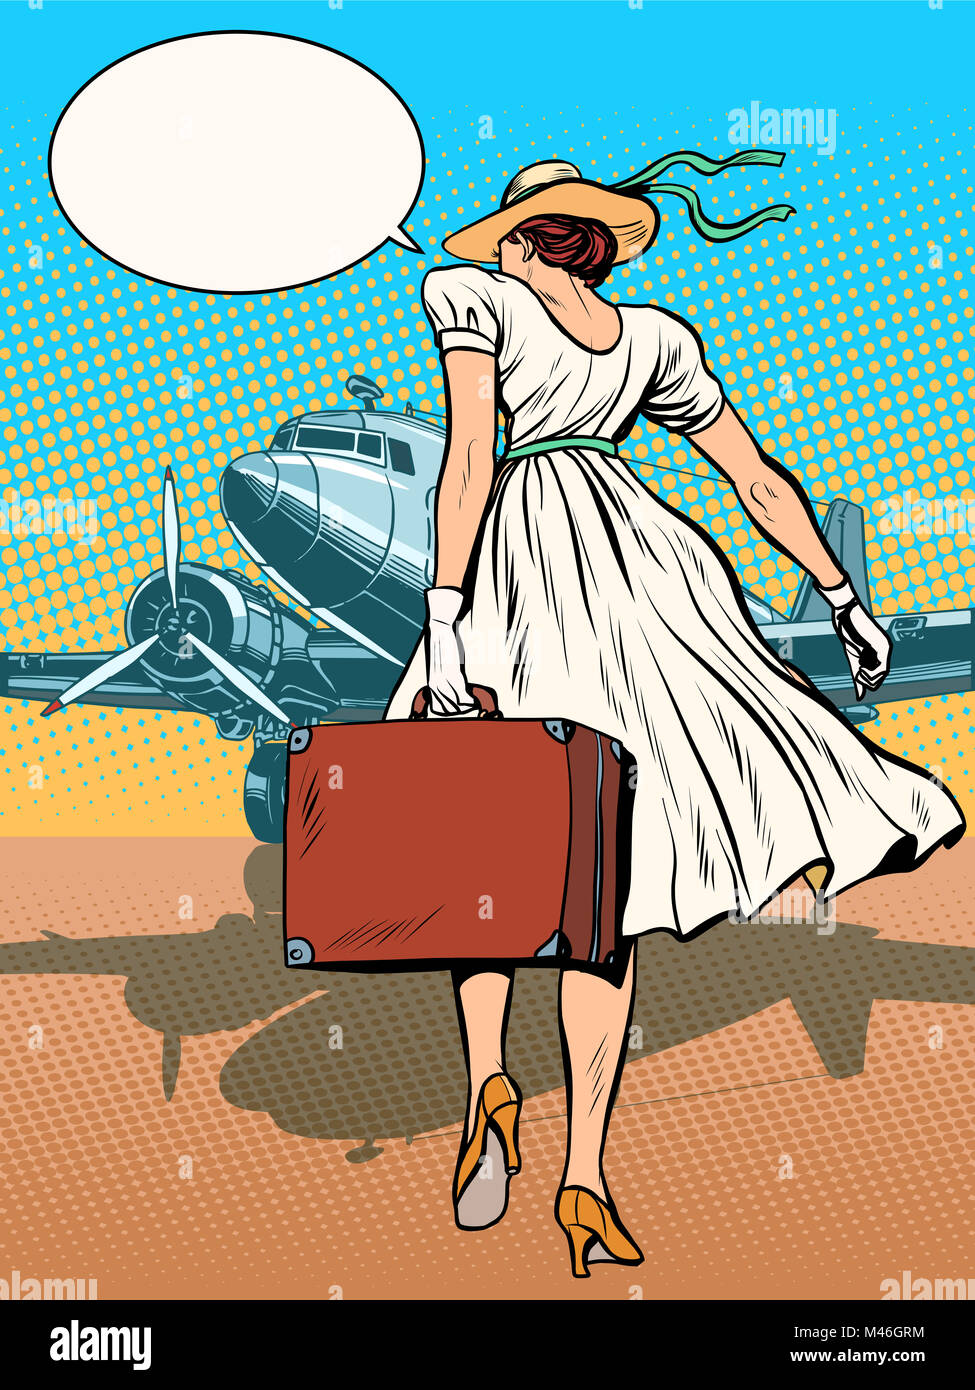 Lady passenger aircraft with Luggage - Stock Image